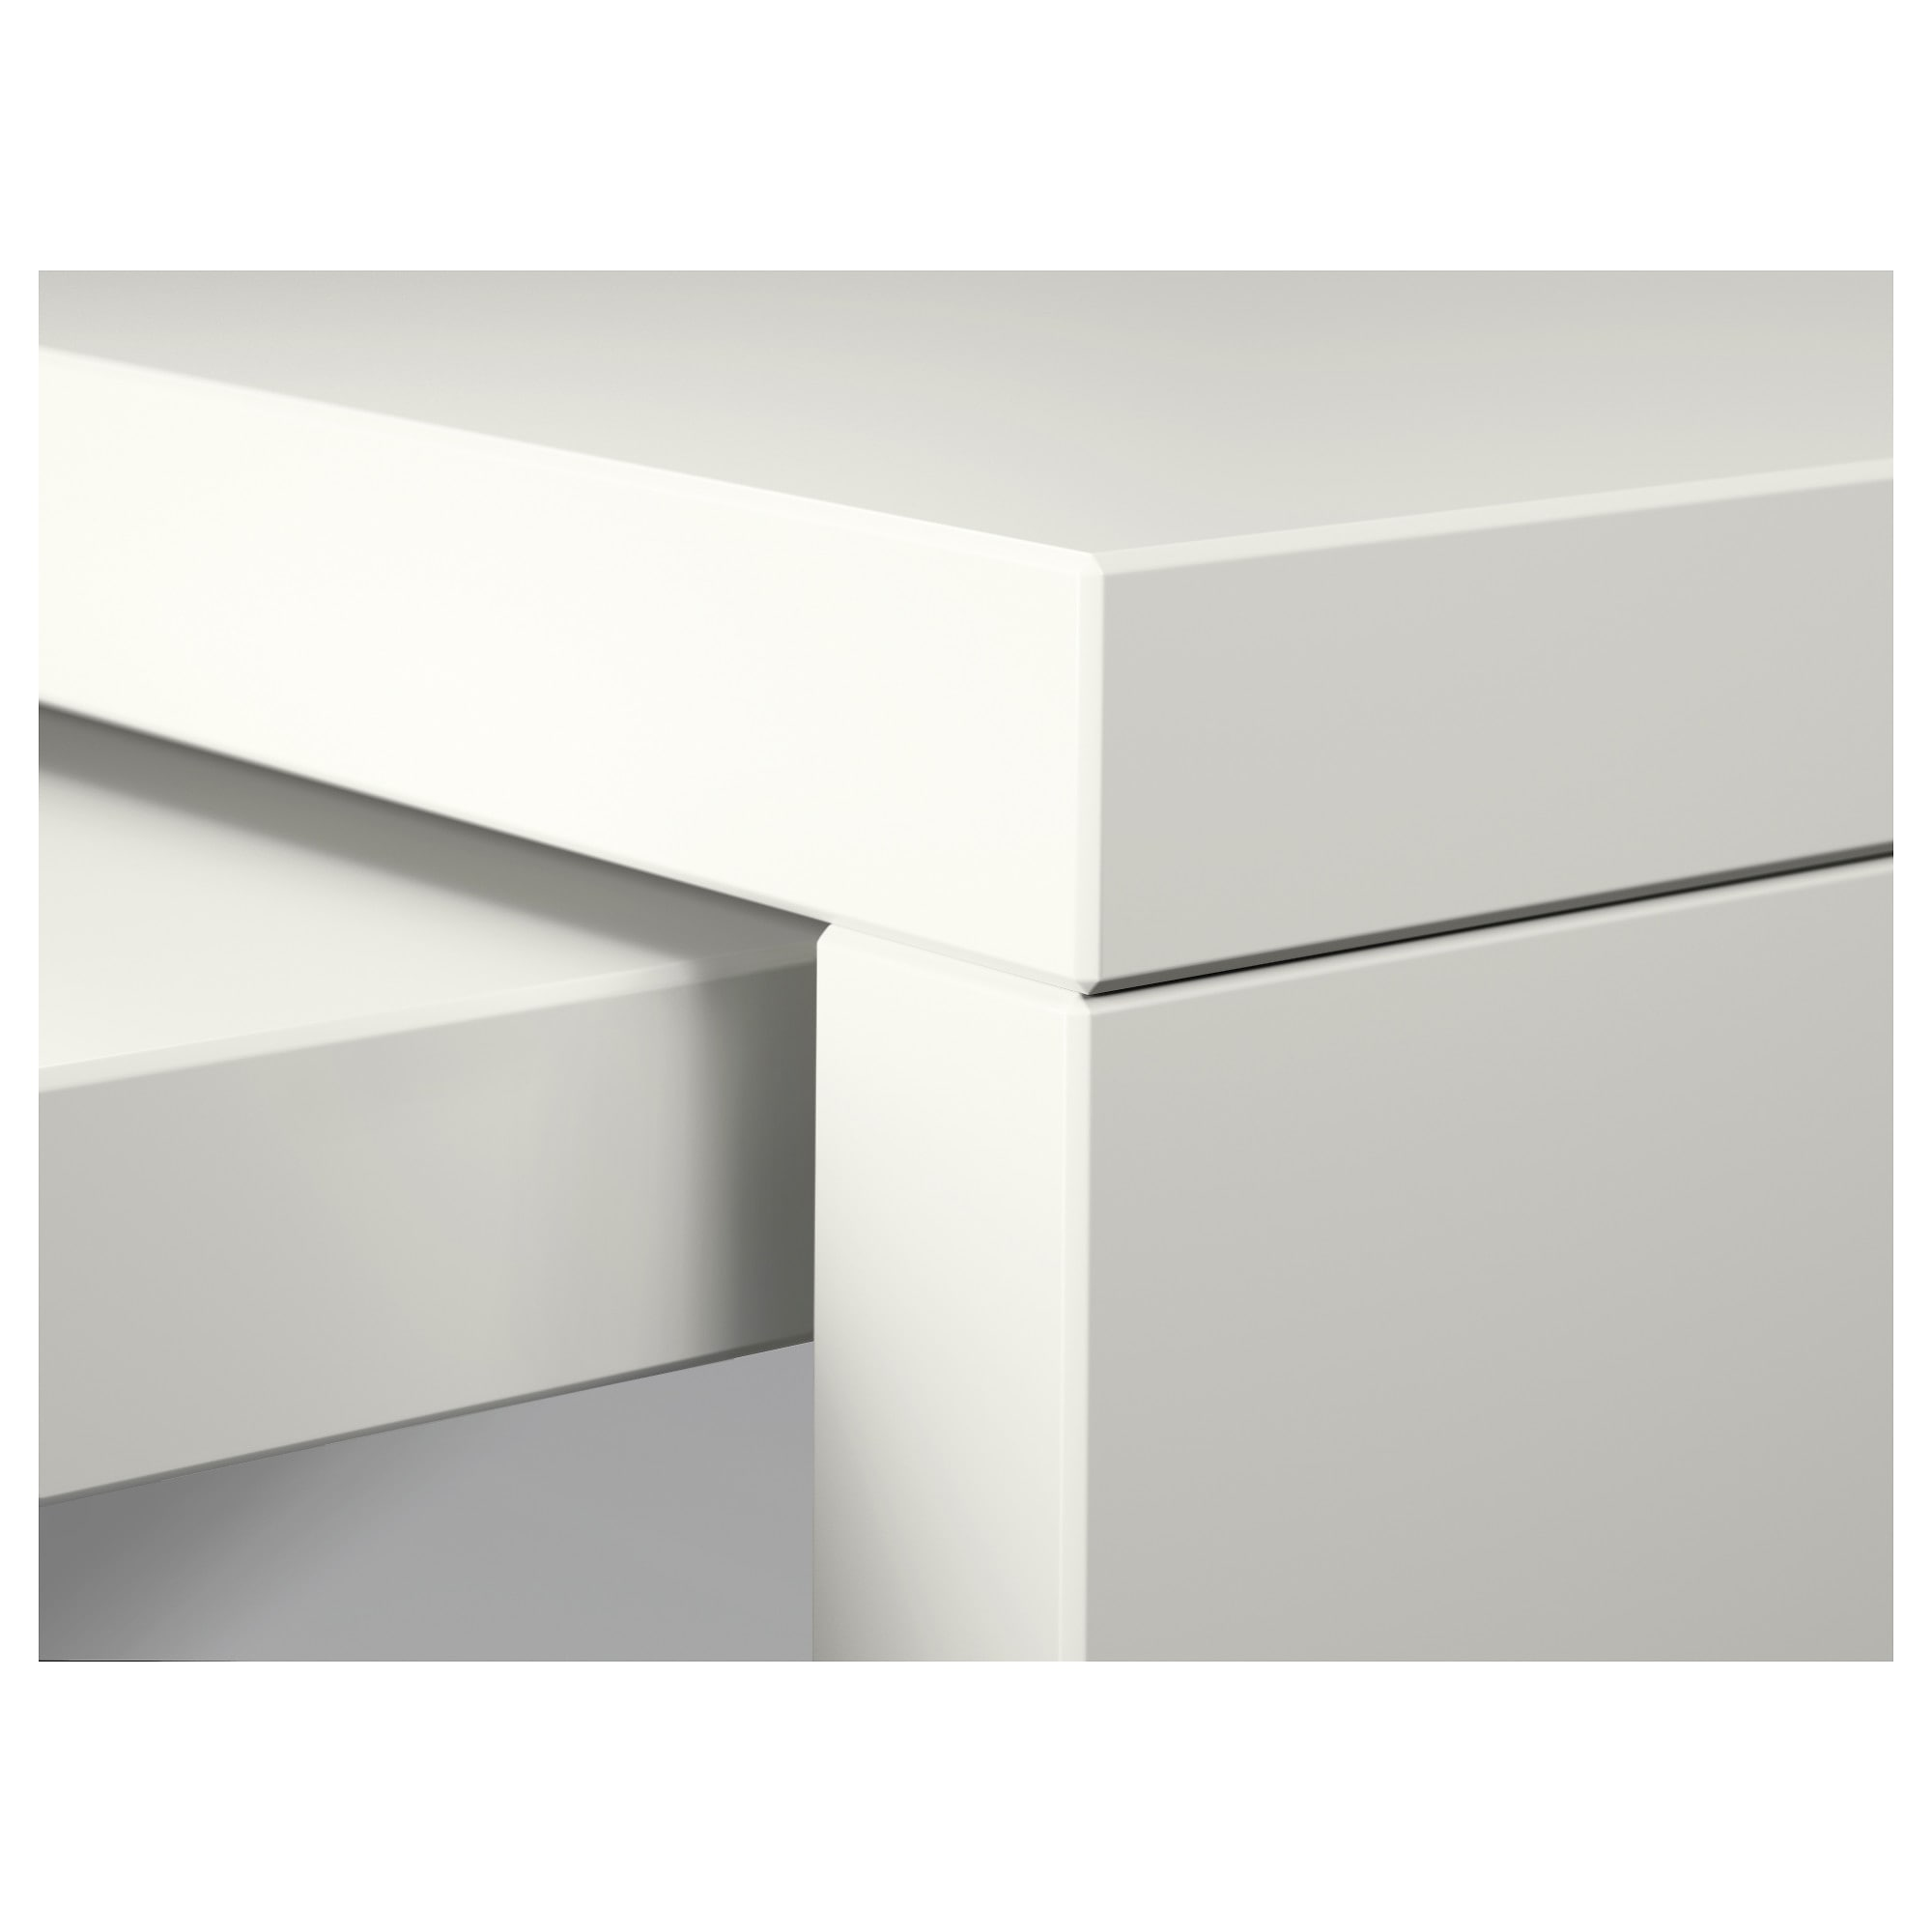 ikea office drawers. Ikea Drawers Office. Office A 3